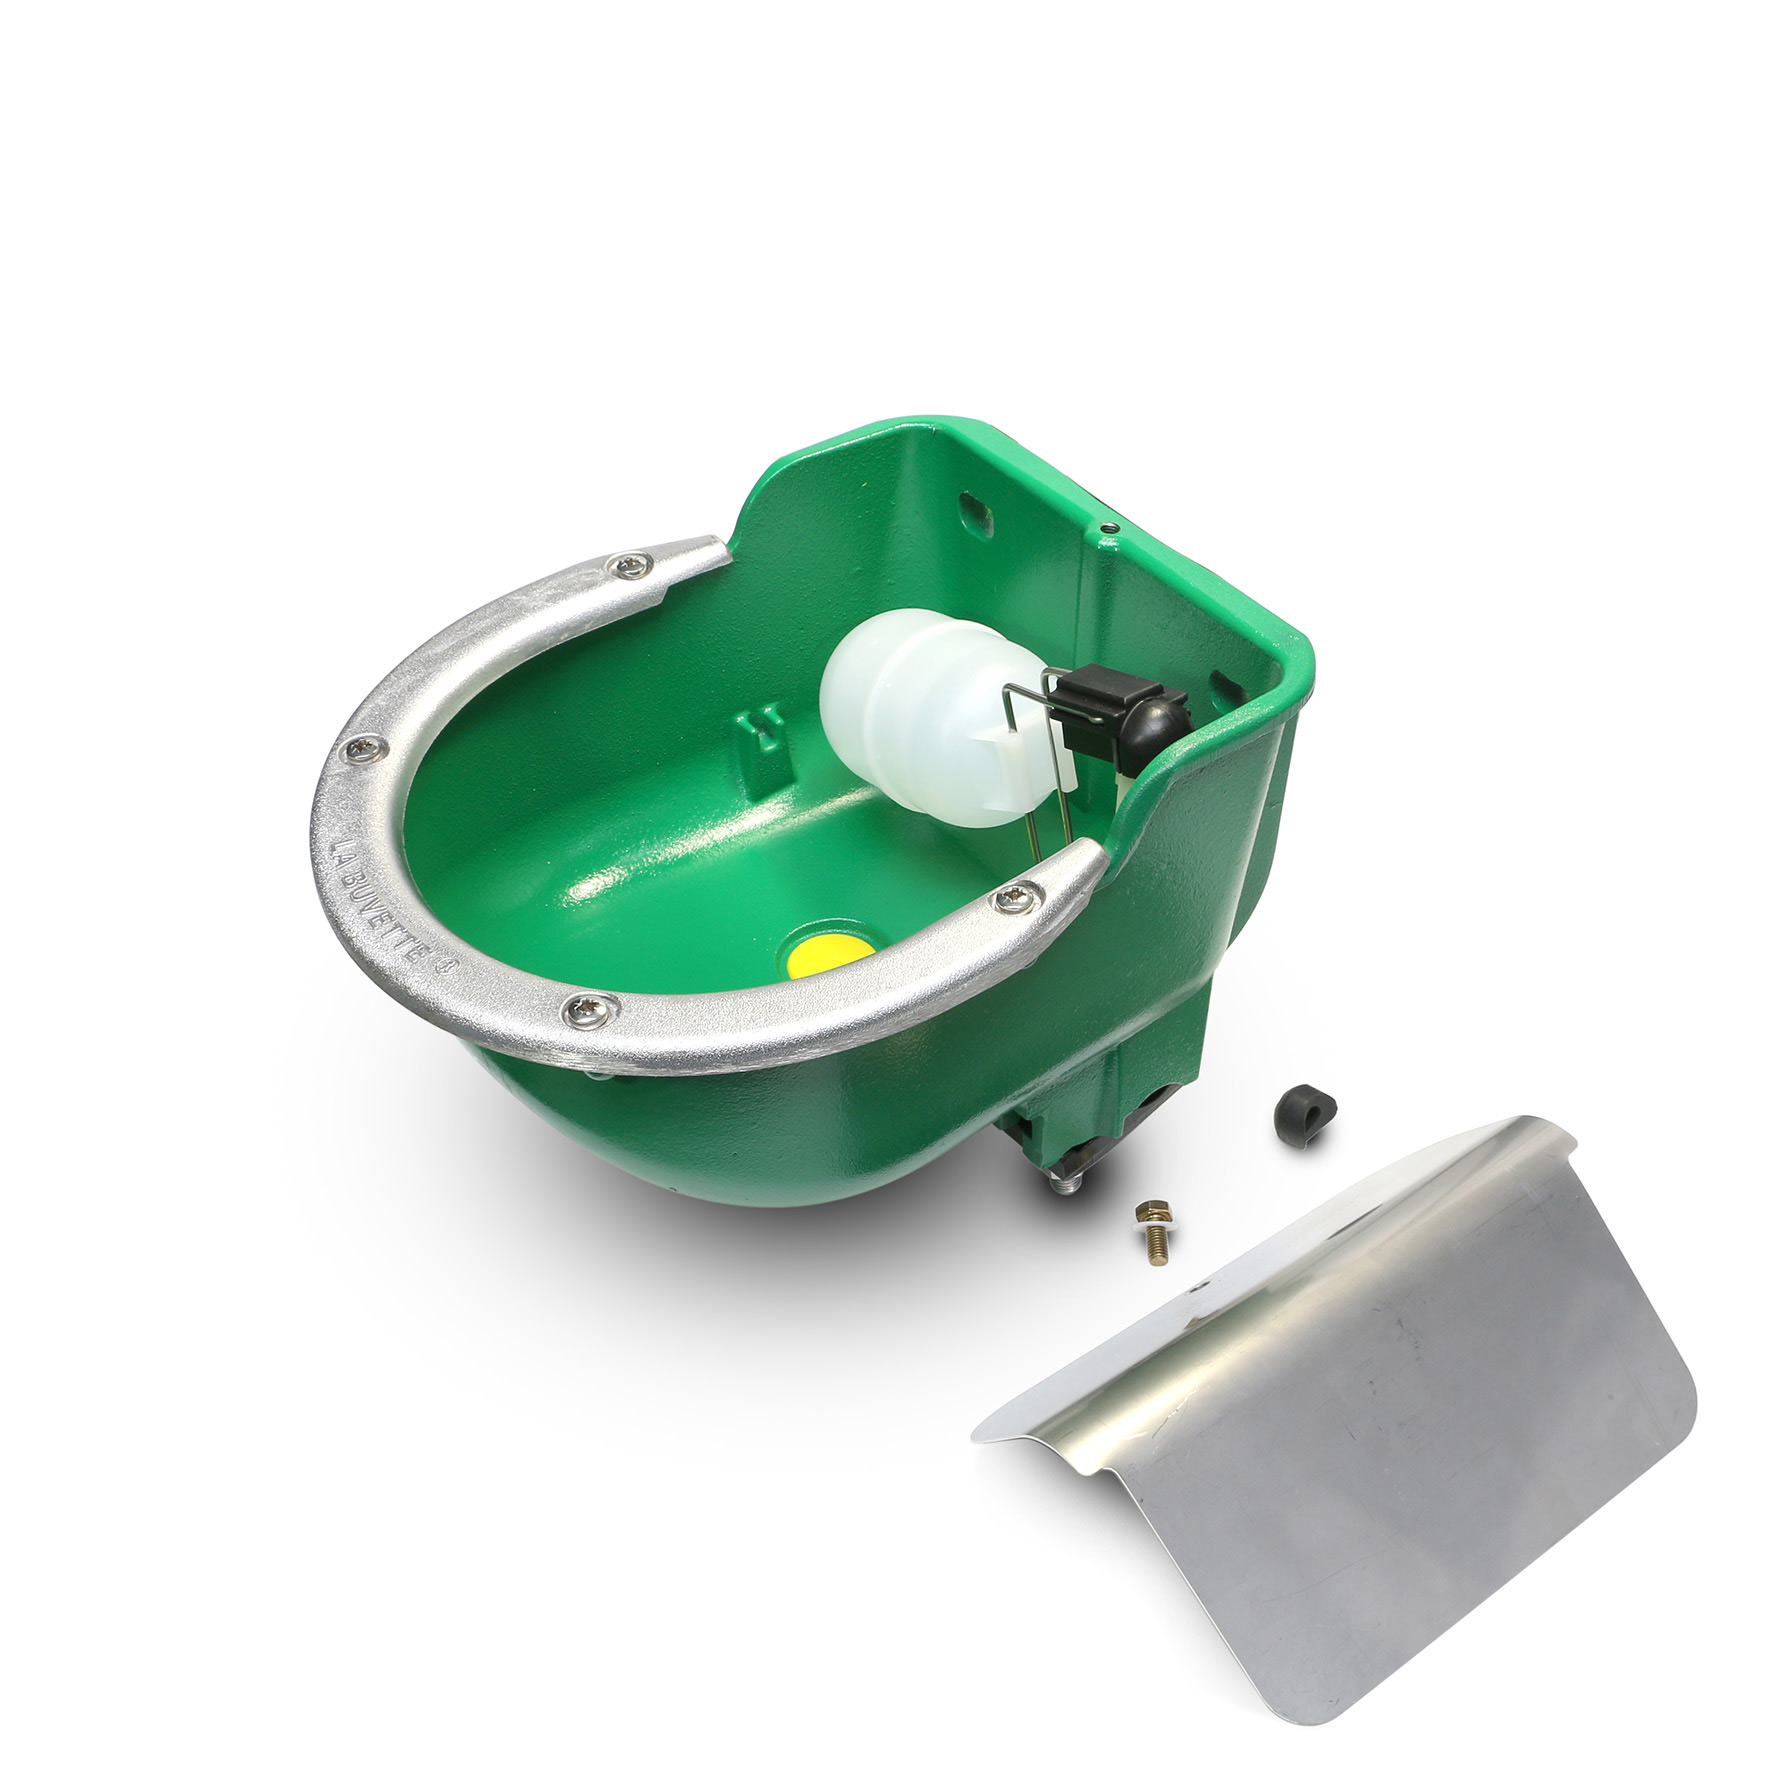 LAC 5A - NON-SPILL drinking bowl with constant water level